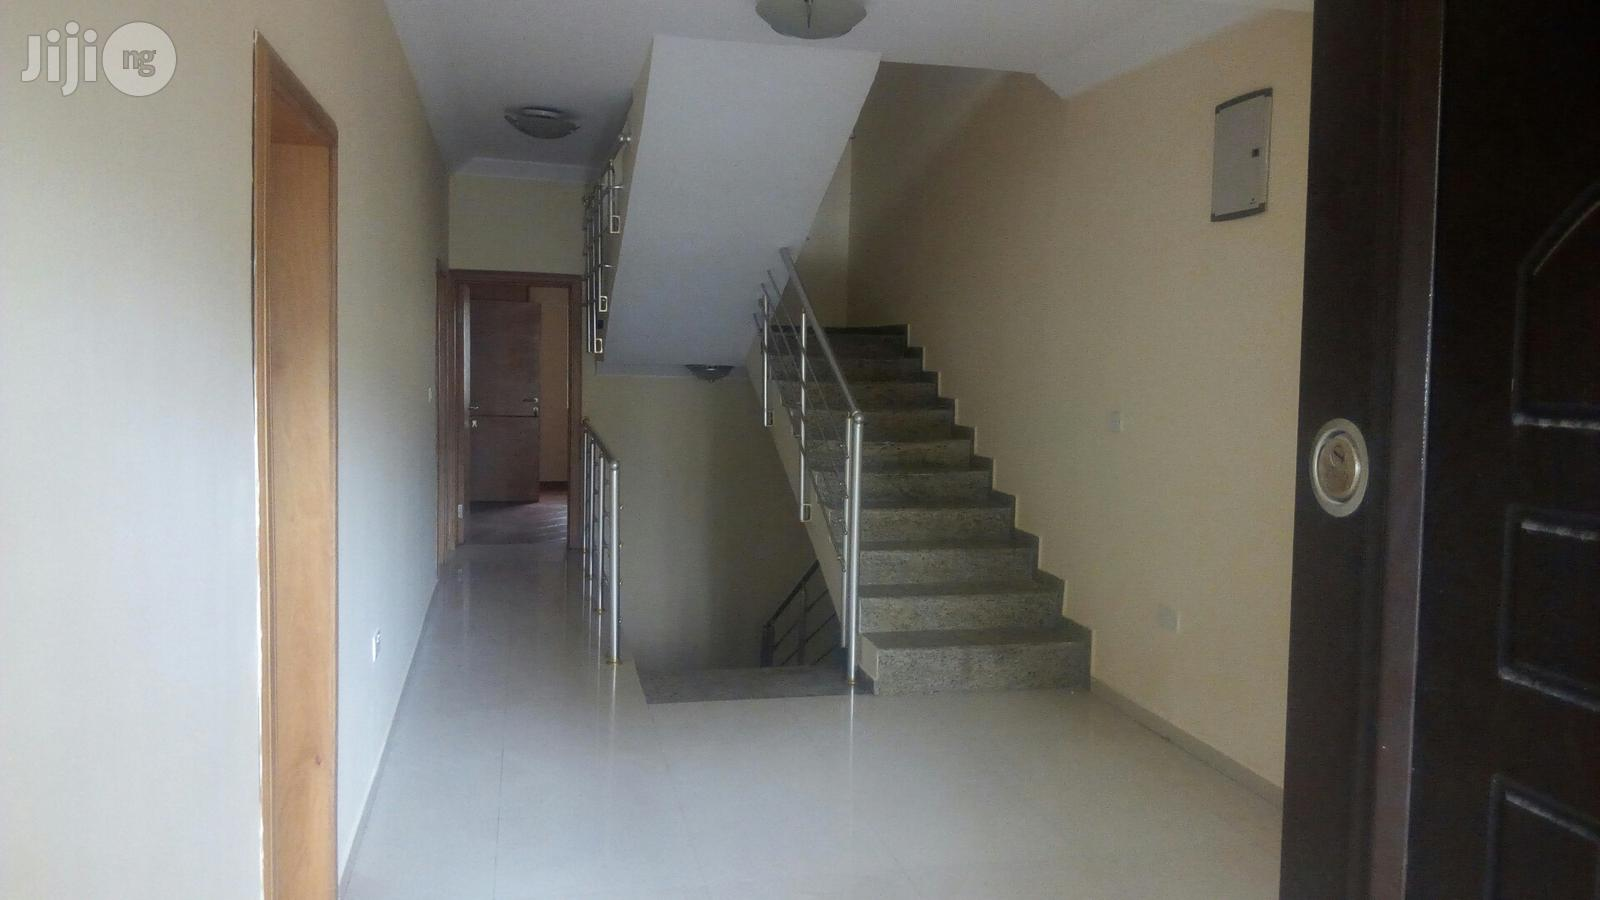 A Service 4 Bedroom Townhouse With an Attached One Room Staff Quarters on Ihuntayo Street, Oniru Estate, Lagos | Houses & Apartments For Rent for sale in Victoria Island, Lagos State, Nigeria